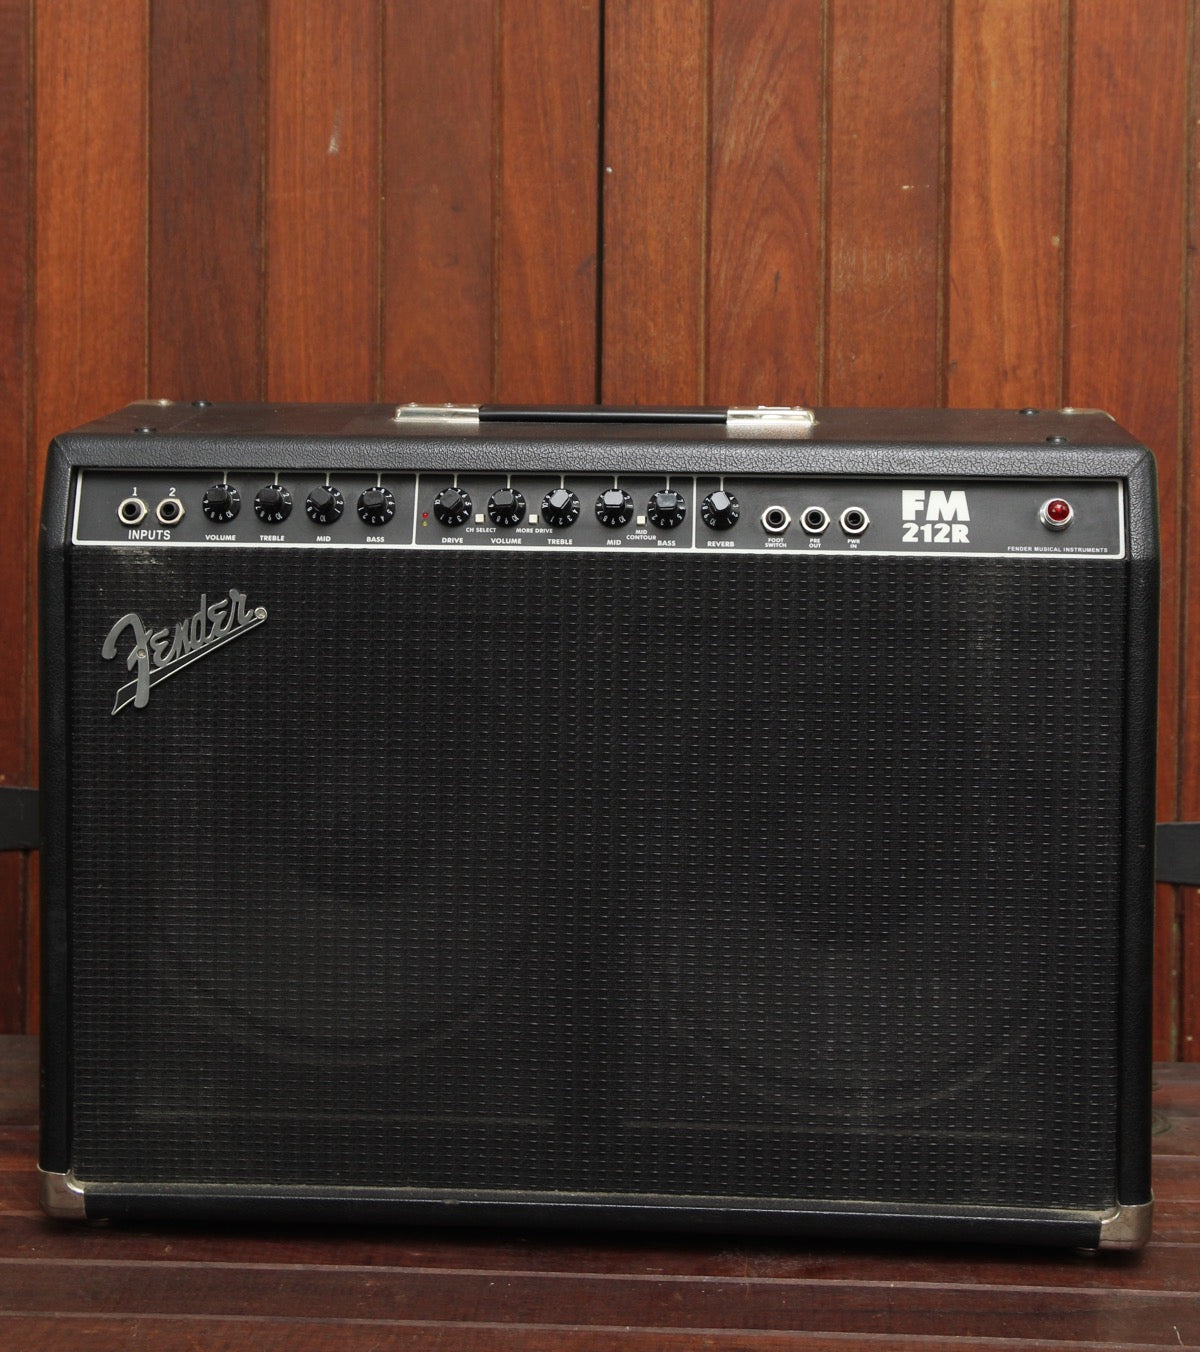 Fender FM212R Solid-State Guitar Combo Amplifier Pre-Owned